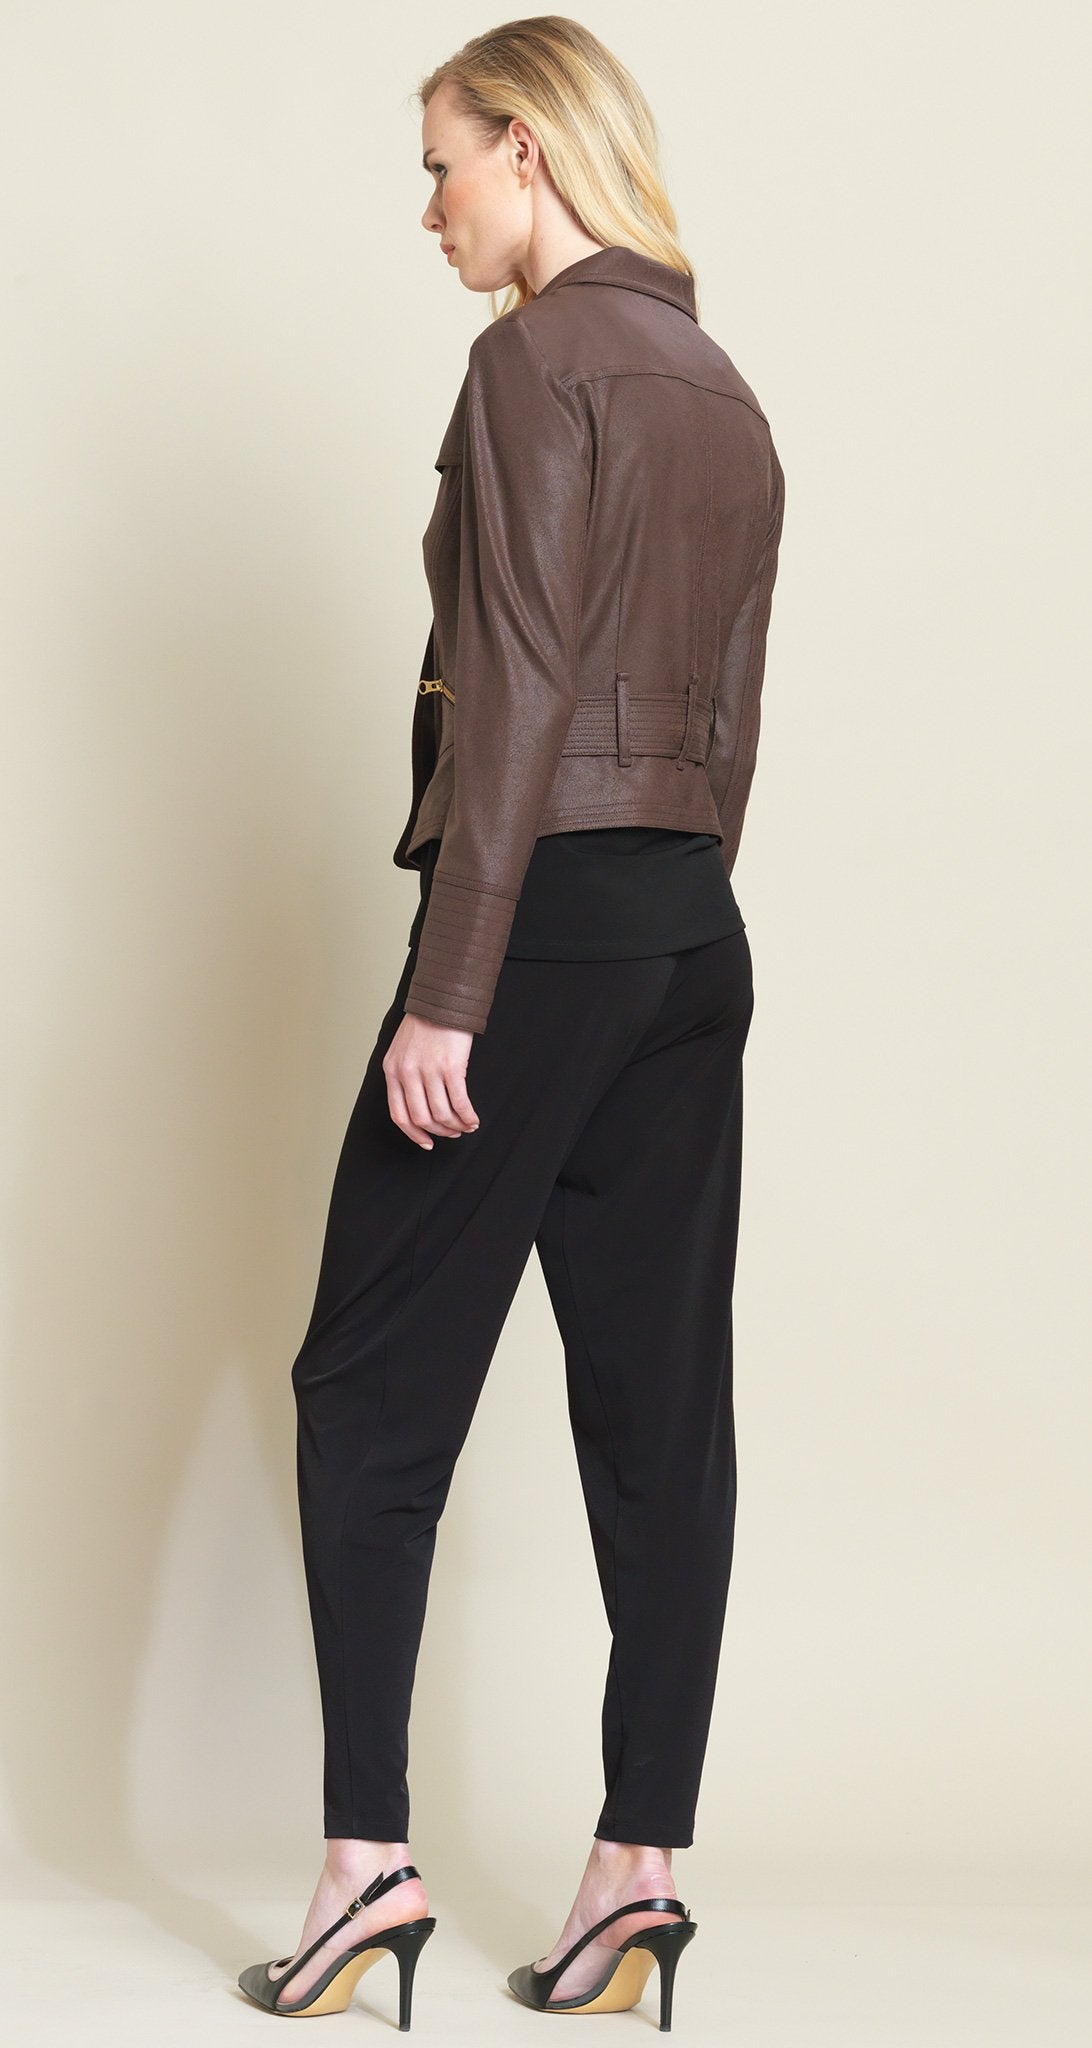 Belted Liquid Leather Pocket Zip Jacket - Brown - Final Sale - Clara Sunwoo